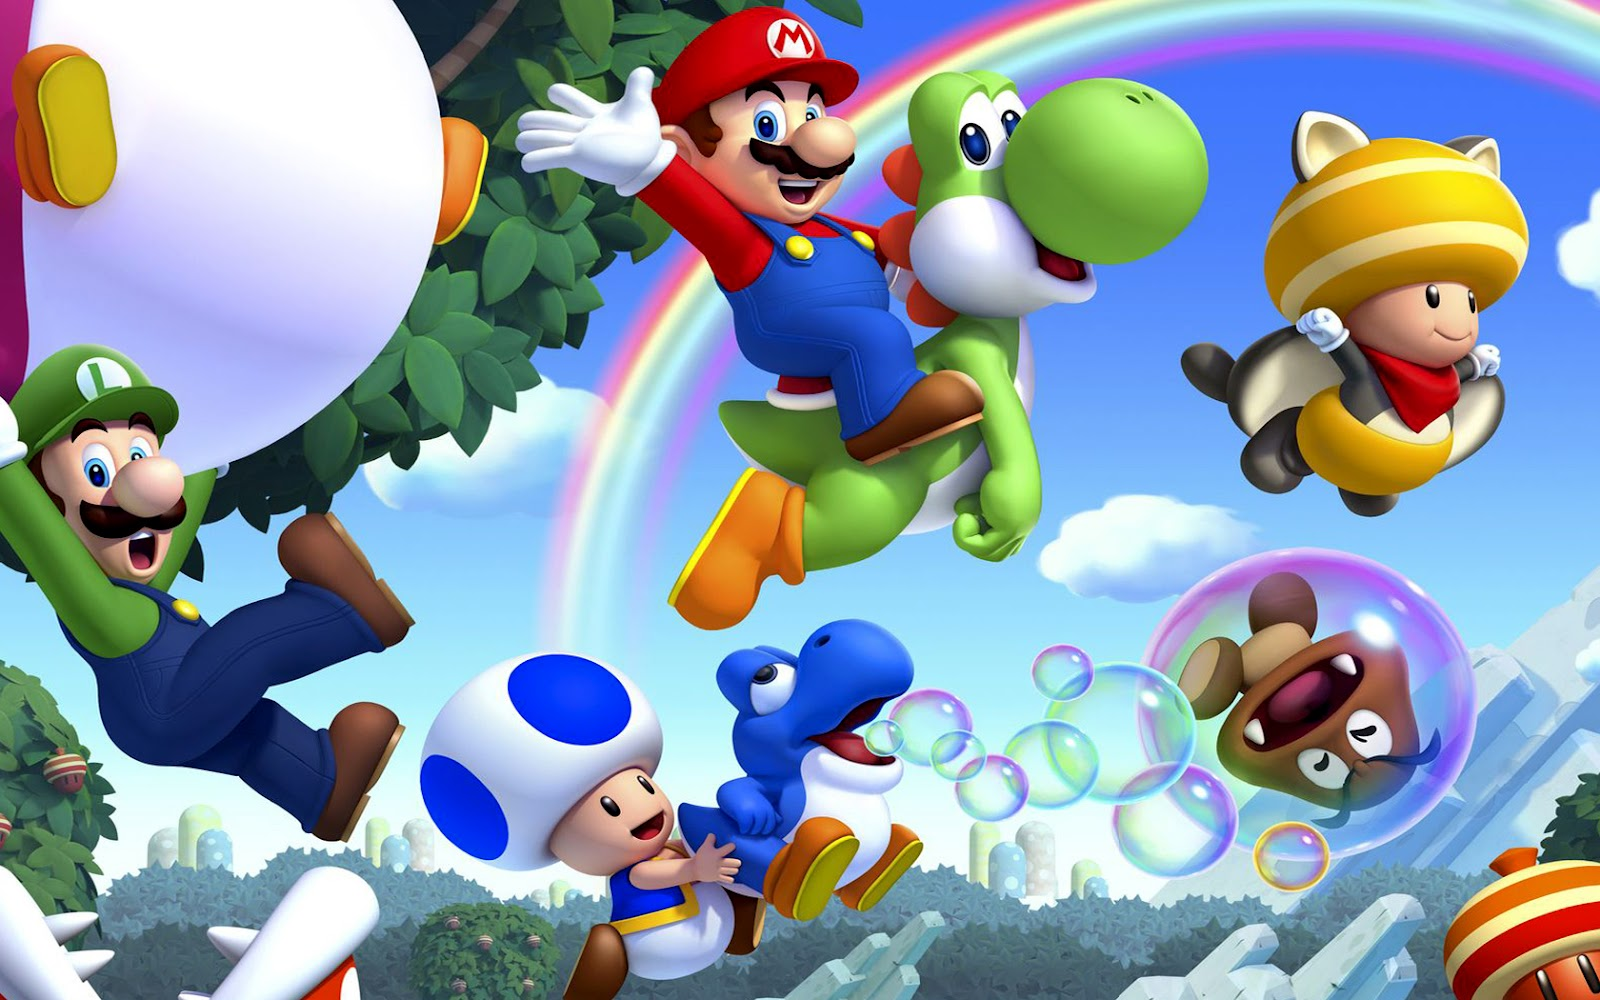 Anime Mario Bross Keren Download This New Super Bros Picture